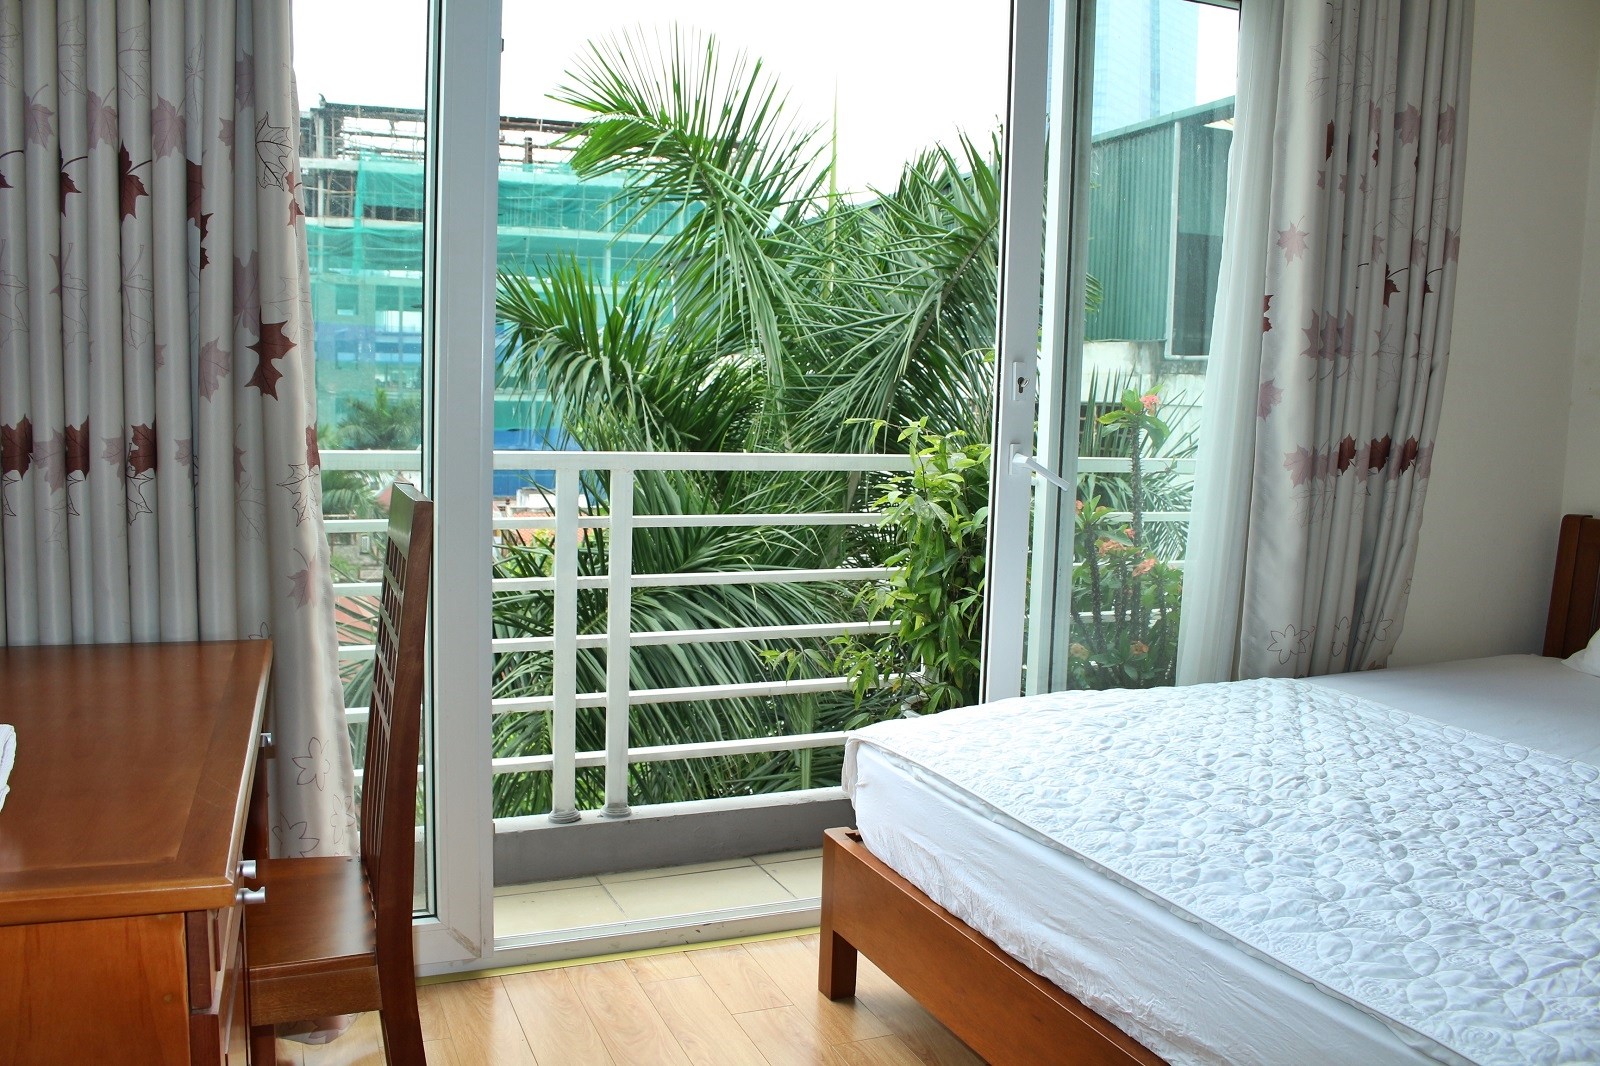 Serviced apartment close to Lotte shopping center